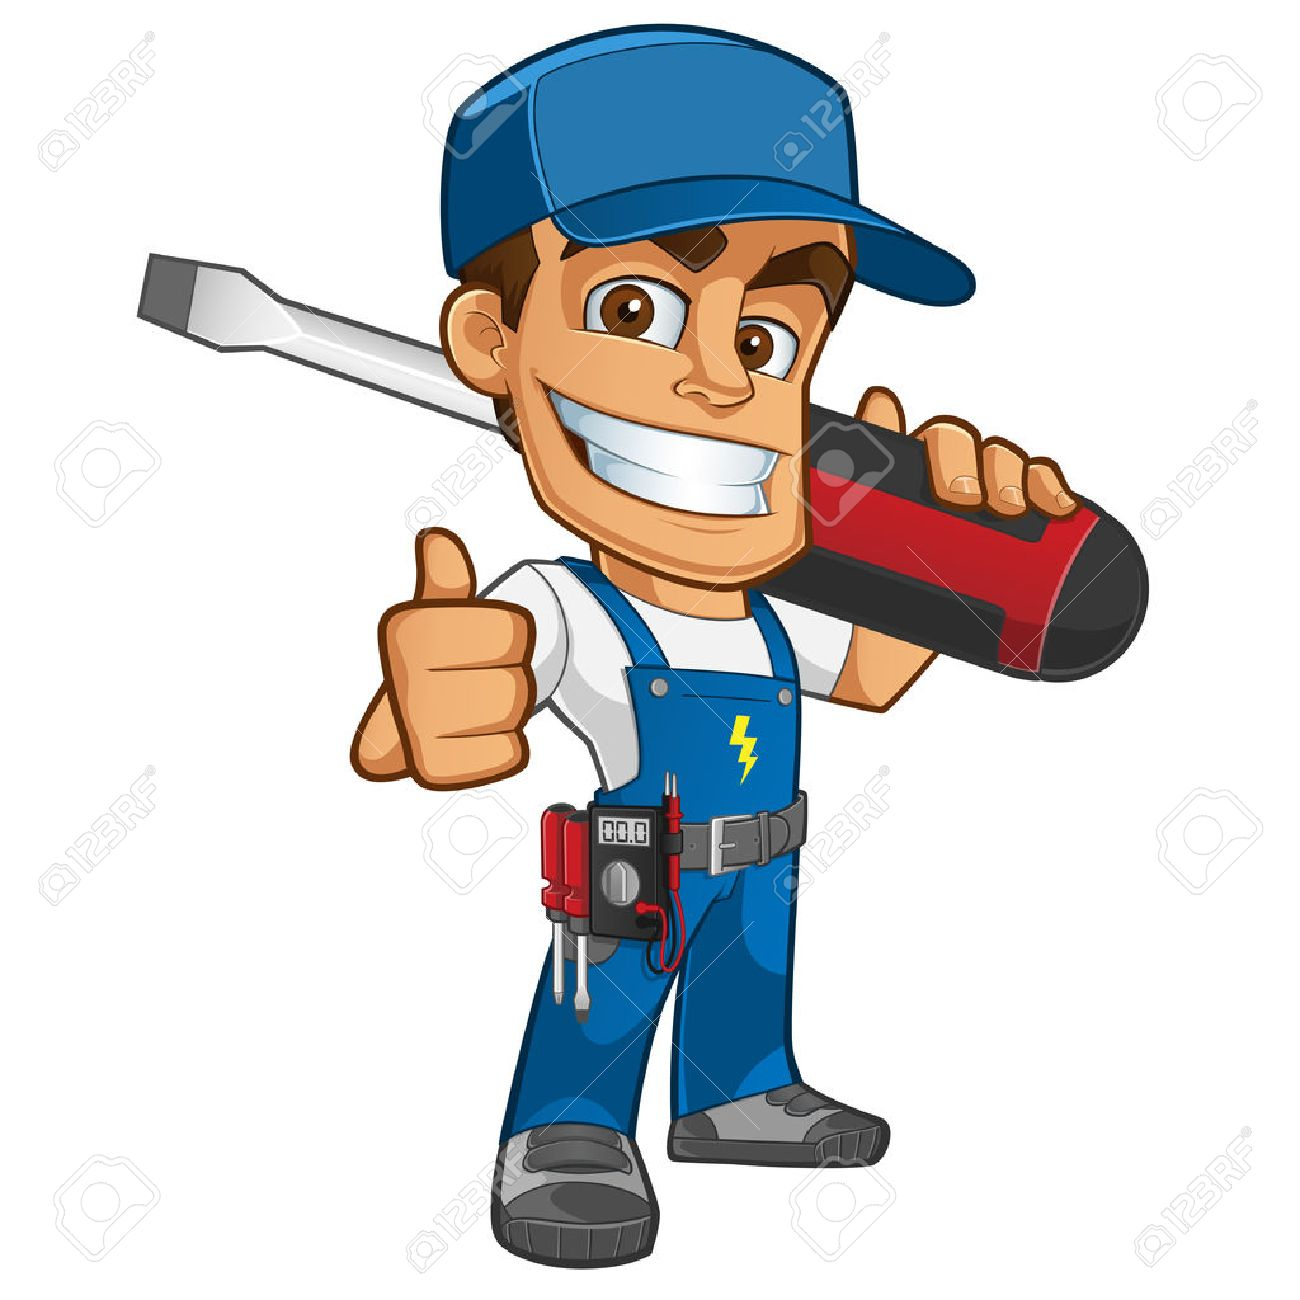 Sympathetic electrician, he will dress in work clothes and carrying different tools - 45334195